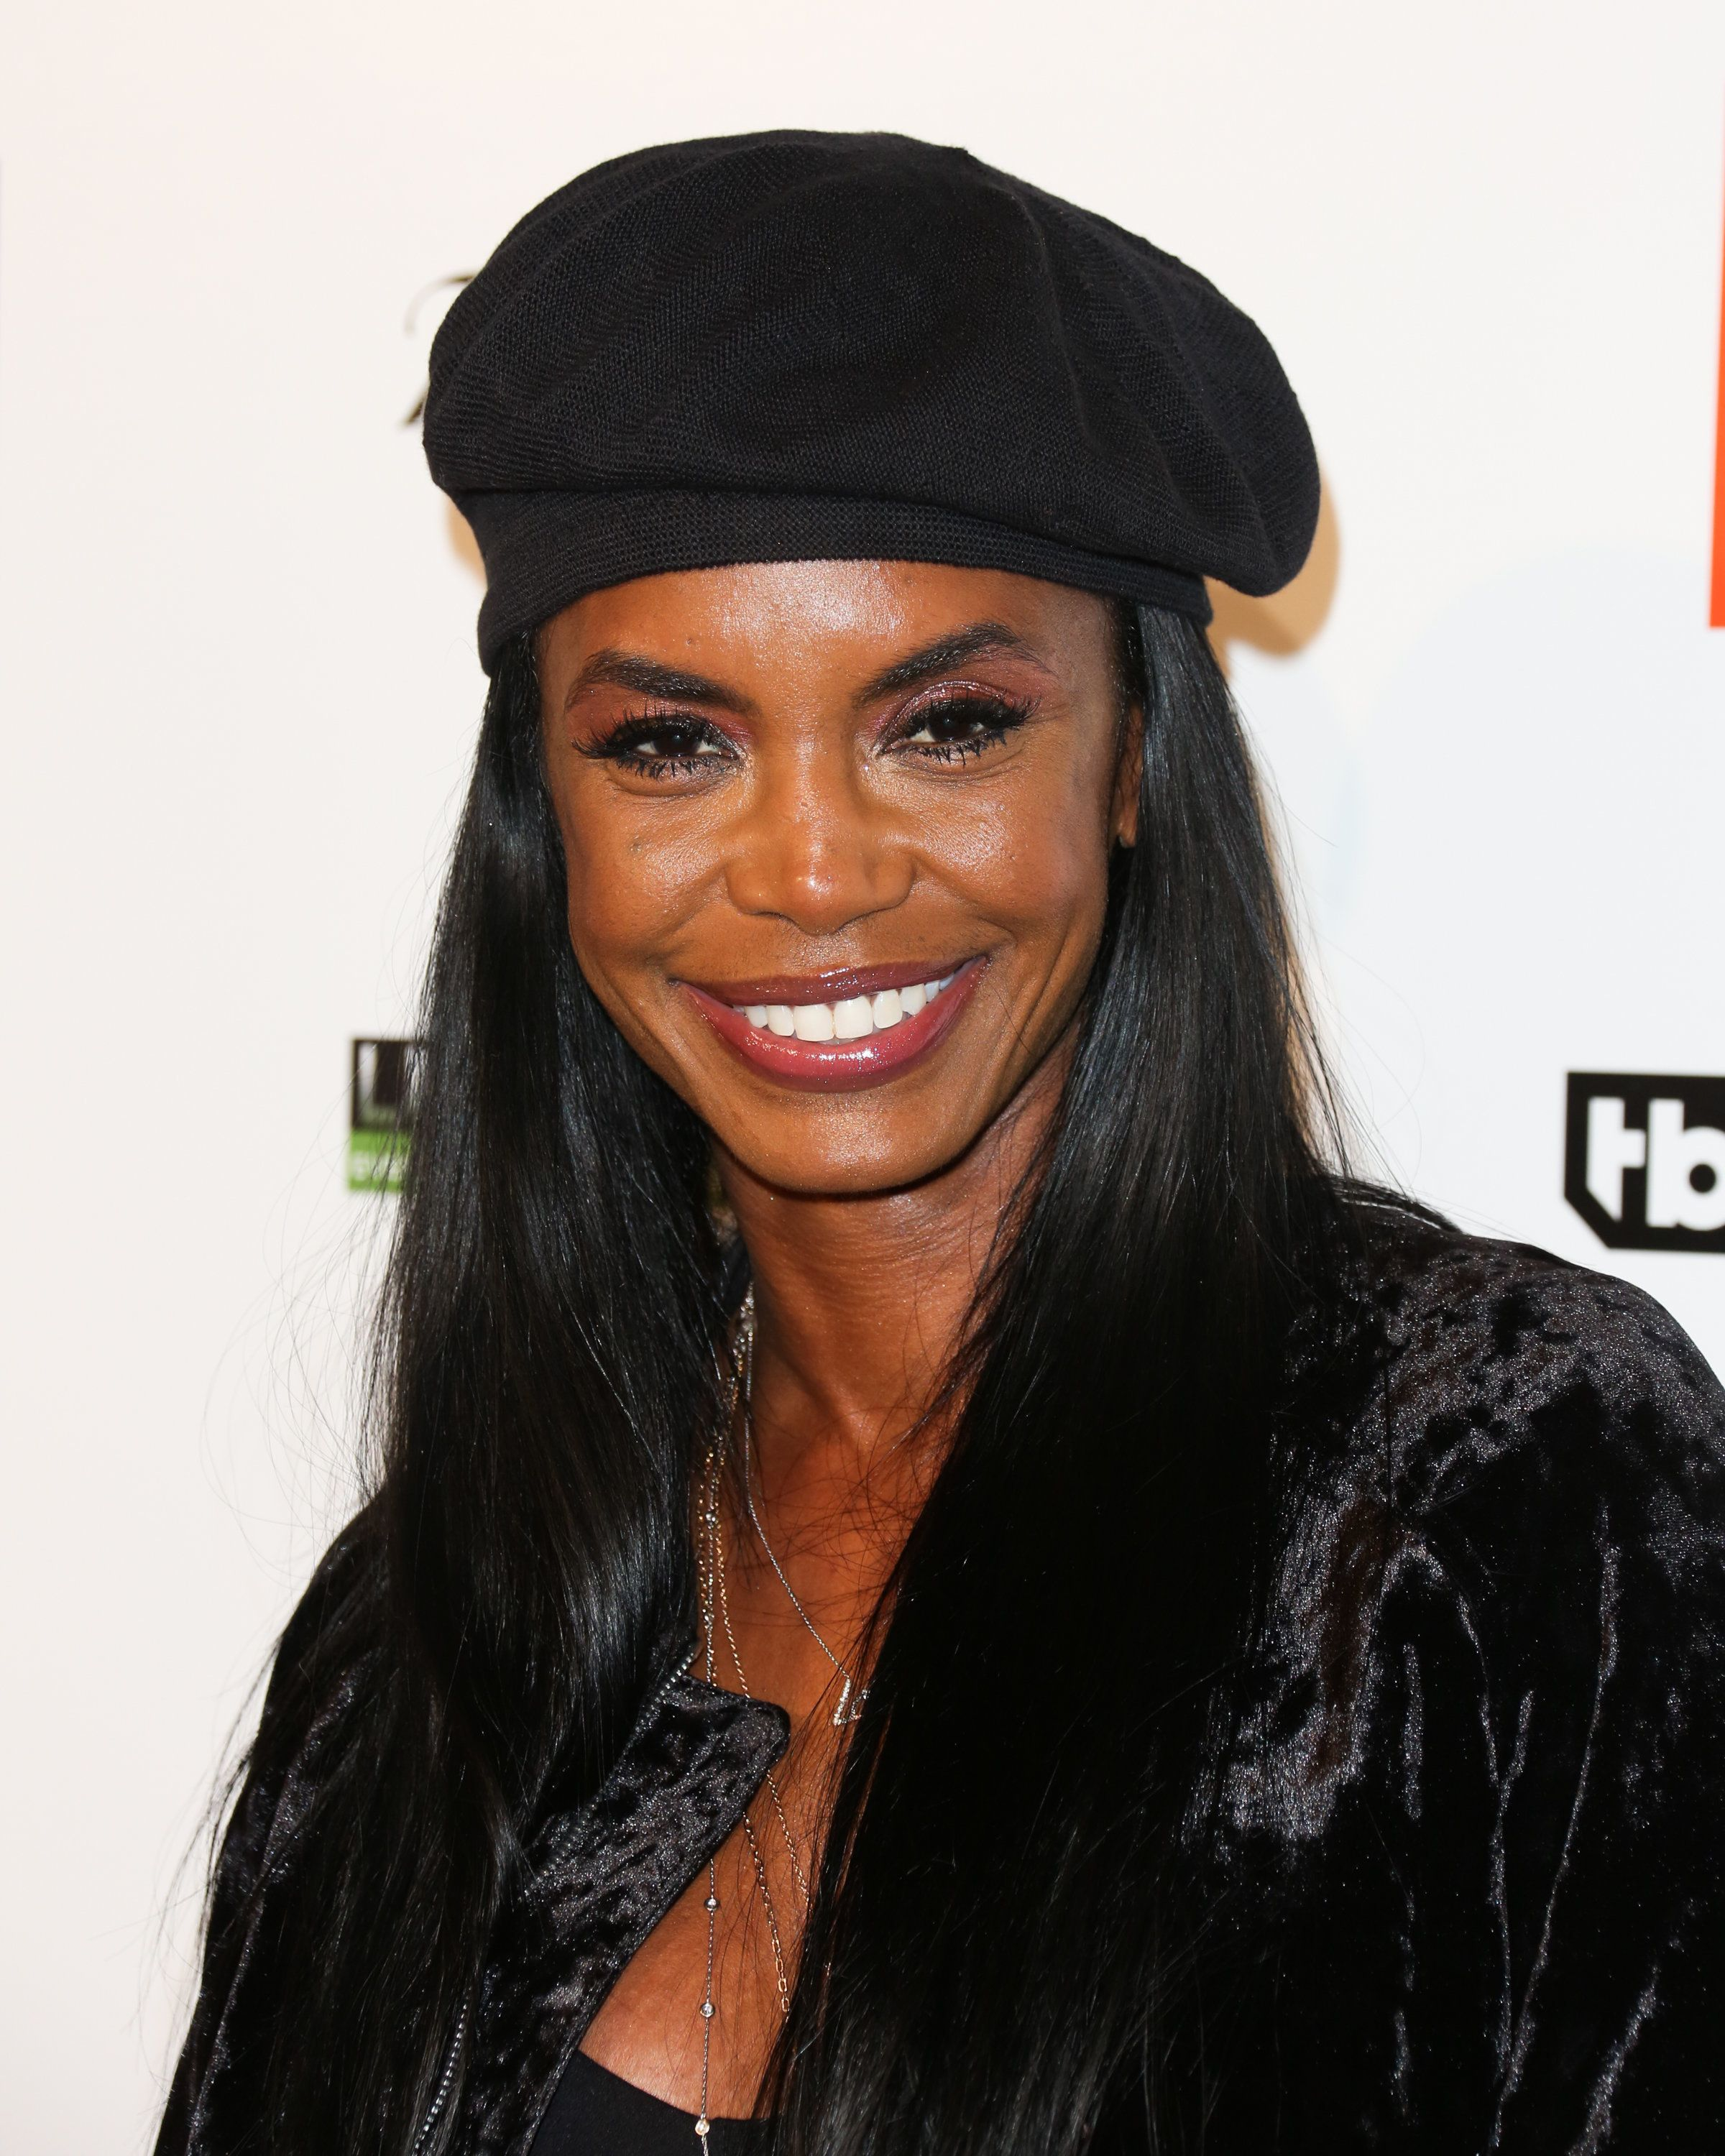 CAUSE OF DEATH UNKNOWN: Model And Actress Kim Porter Dead At